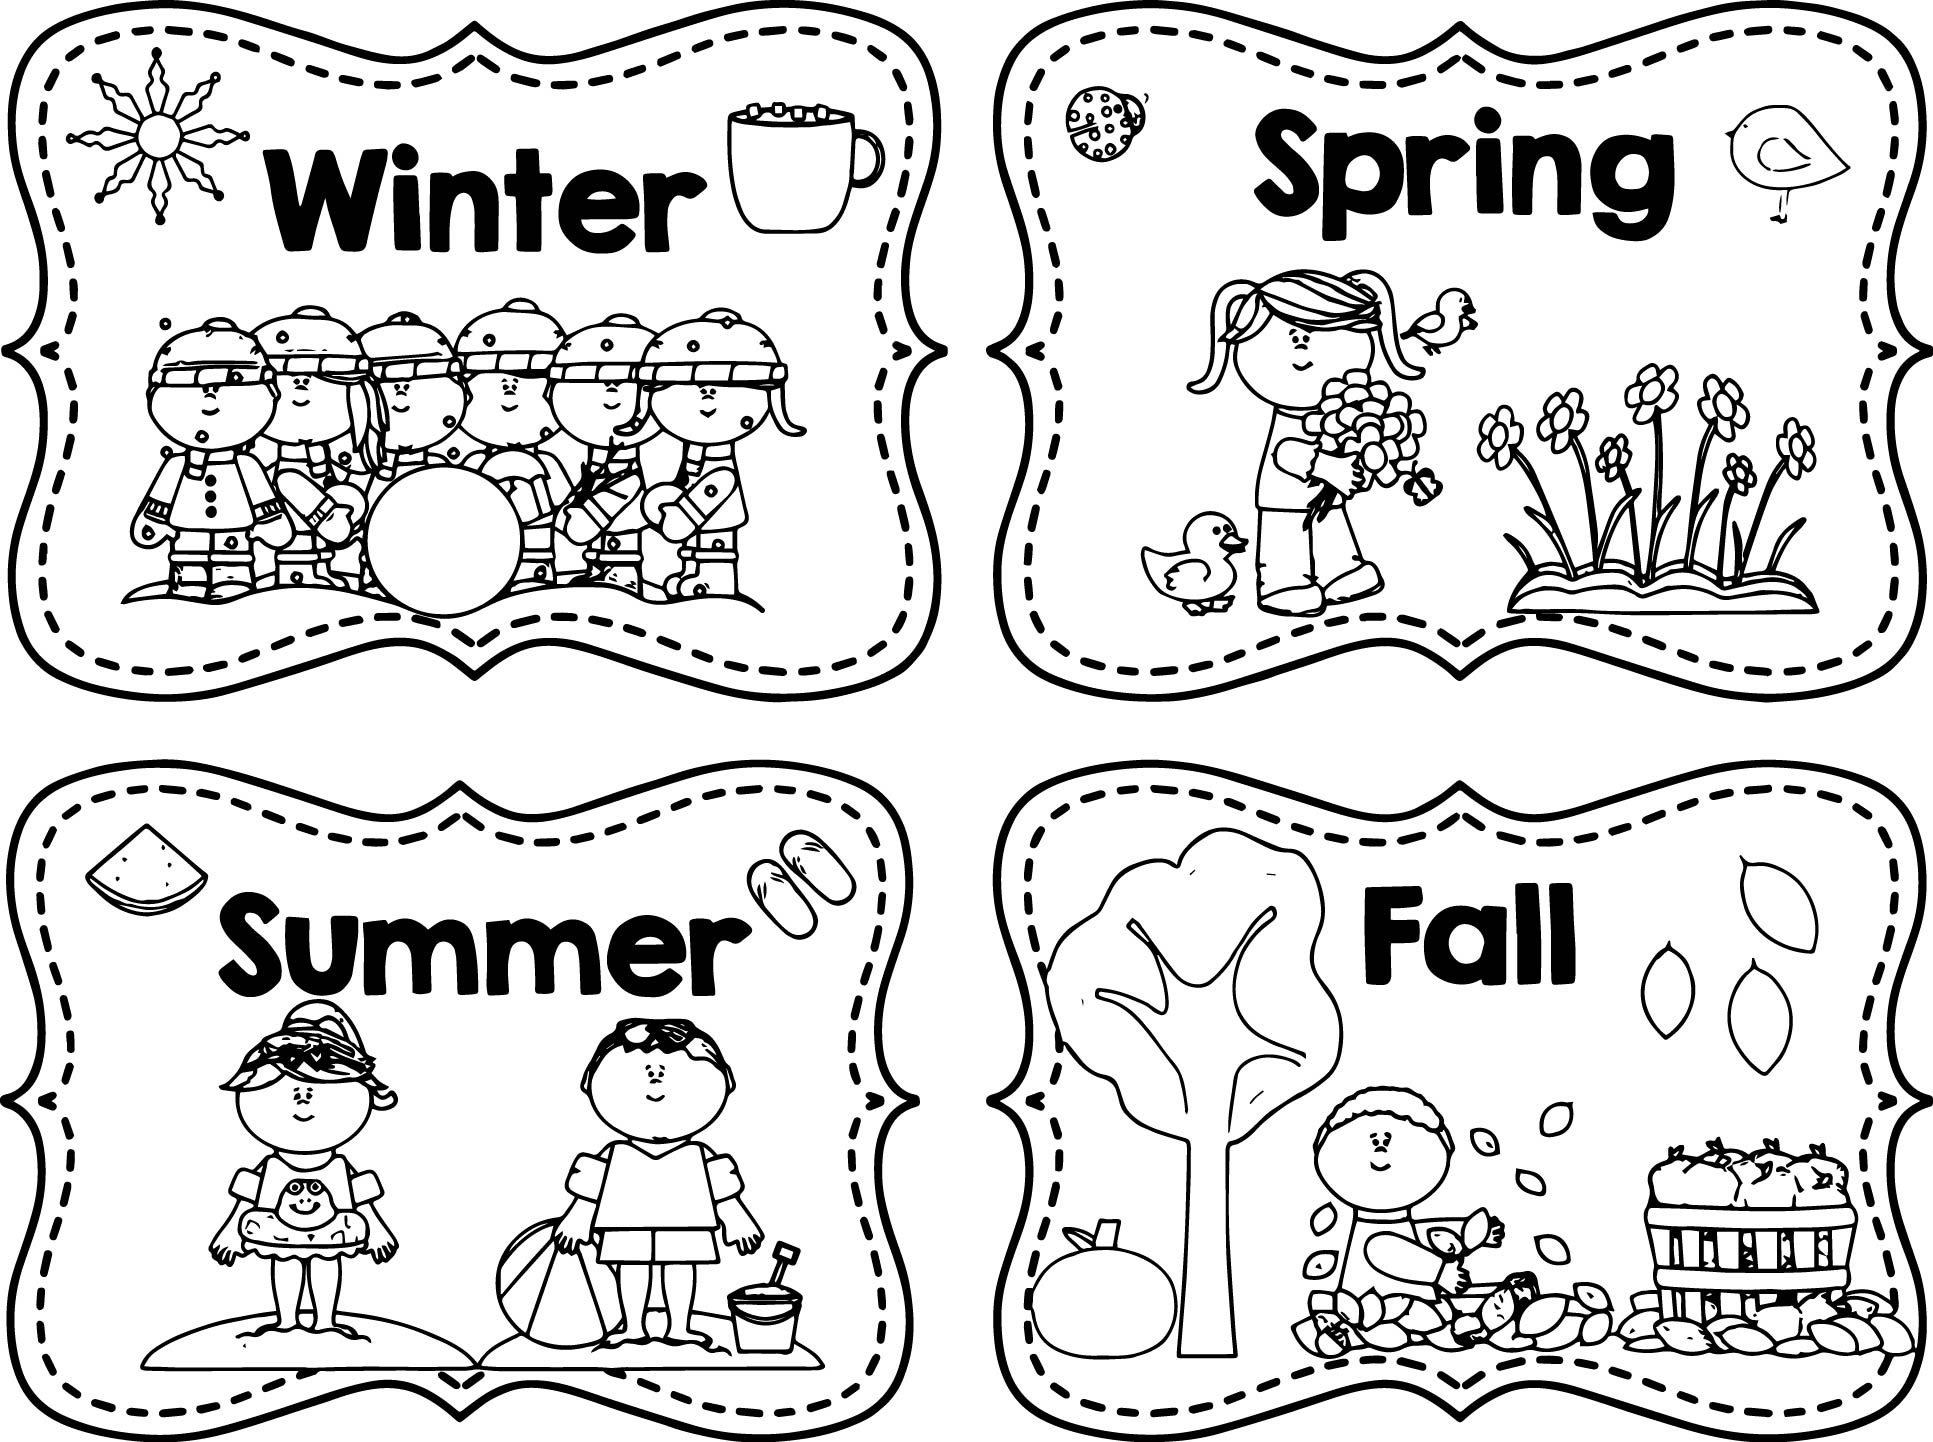 Winter Spring Summer Fall Coloring Page | Wecoloringpage.com